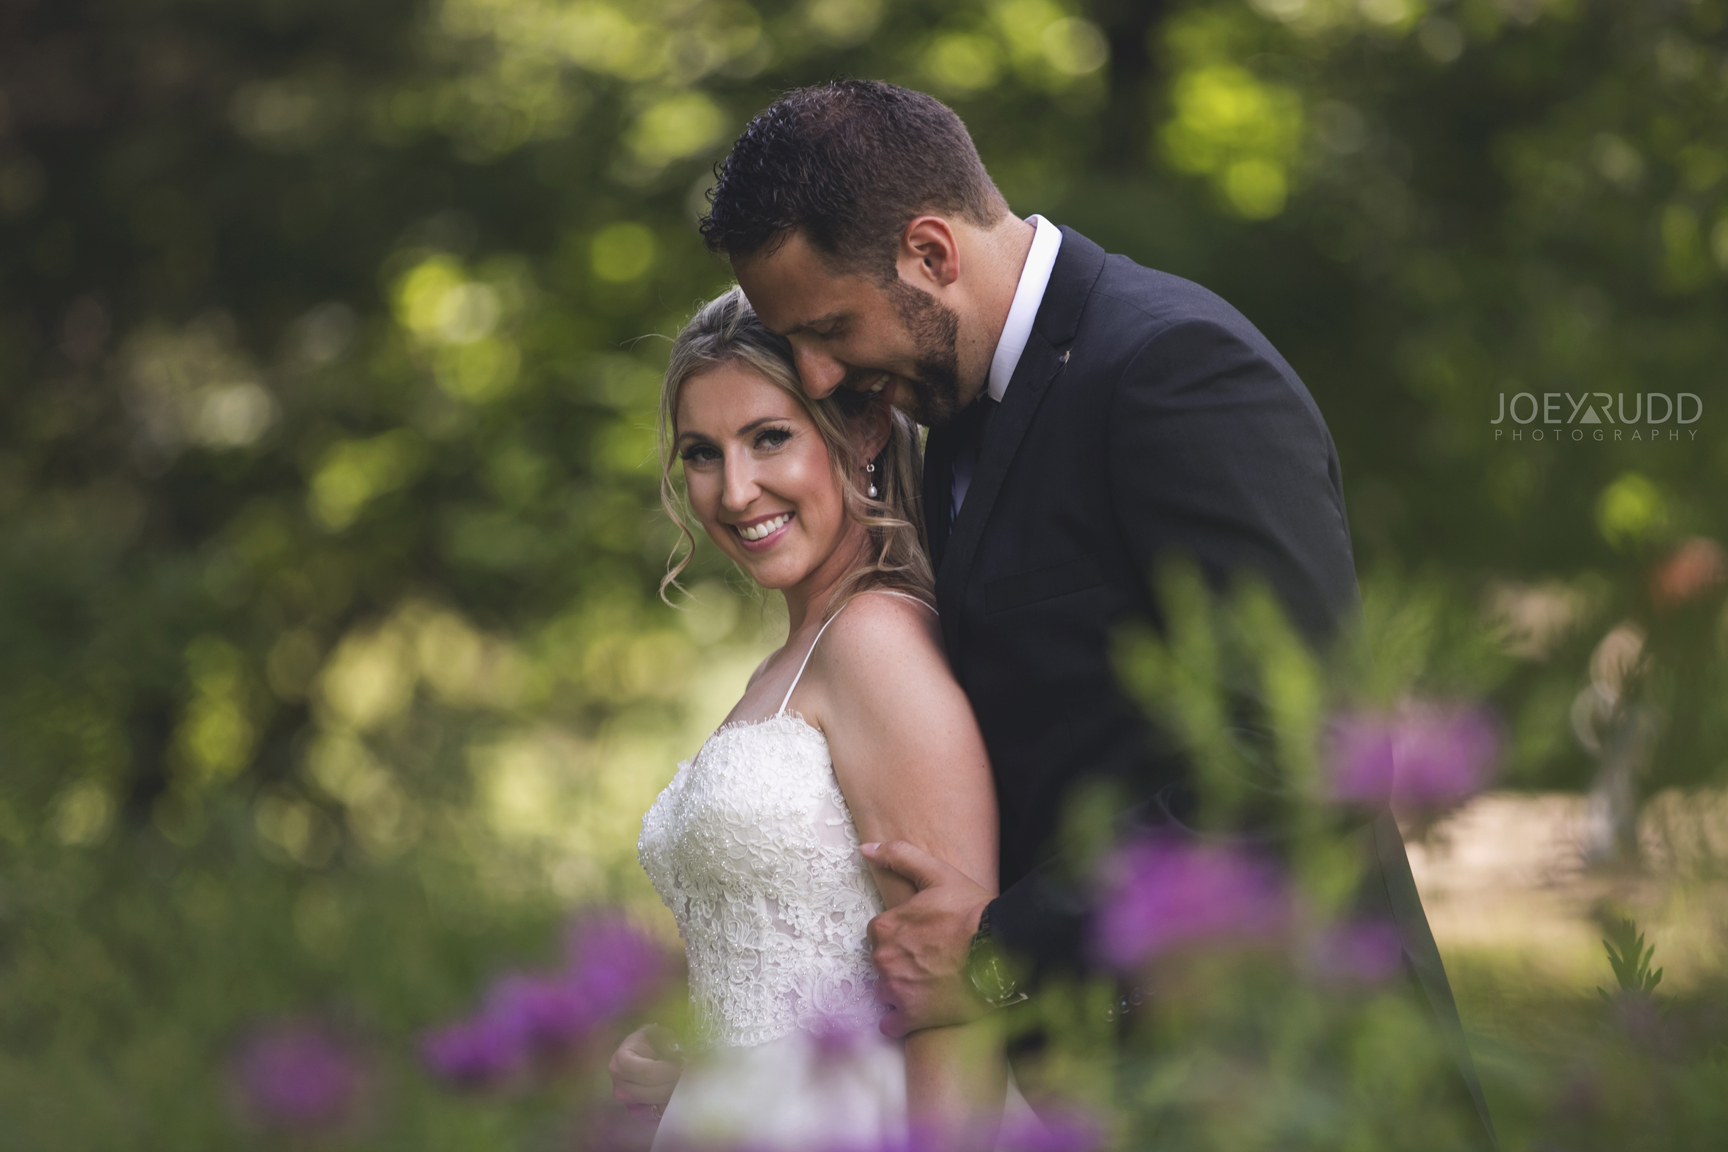 Calabogie Wedding at Barnet Park by Ottawa Wedding Photographer Joey Rudd Photography Snuggle